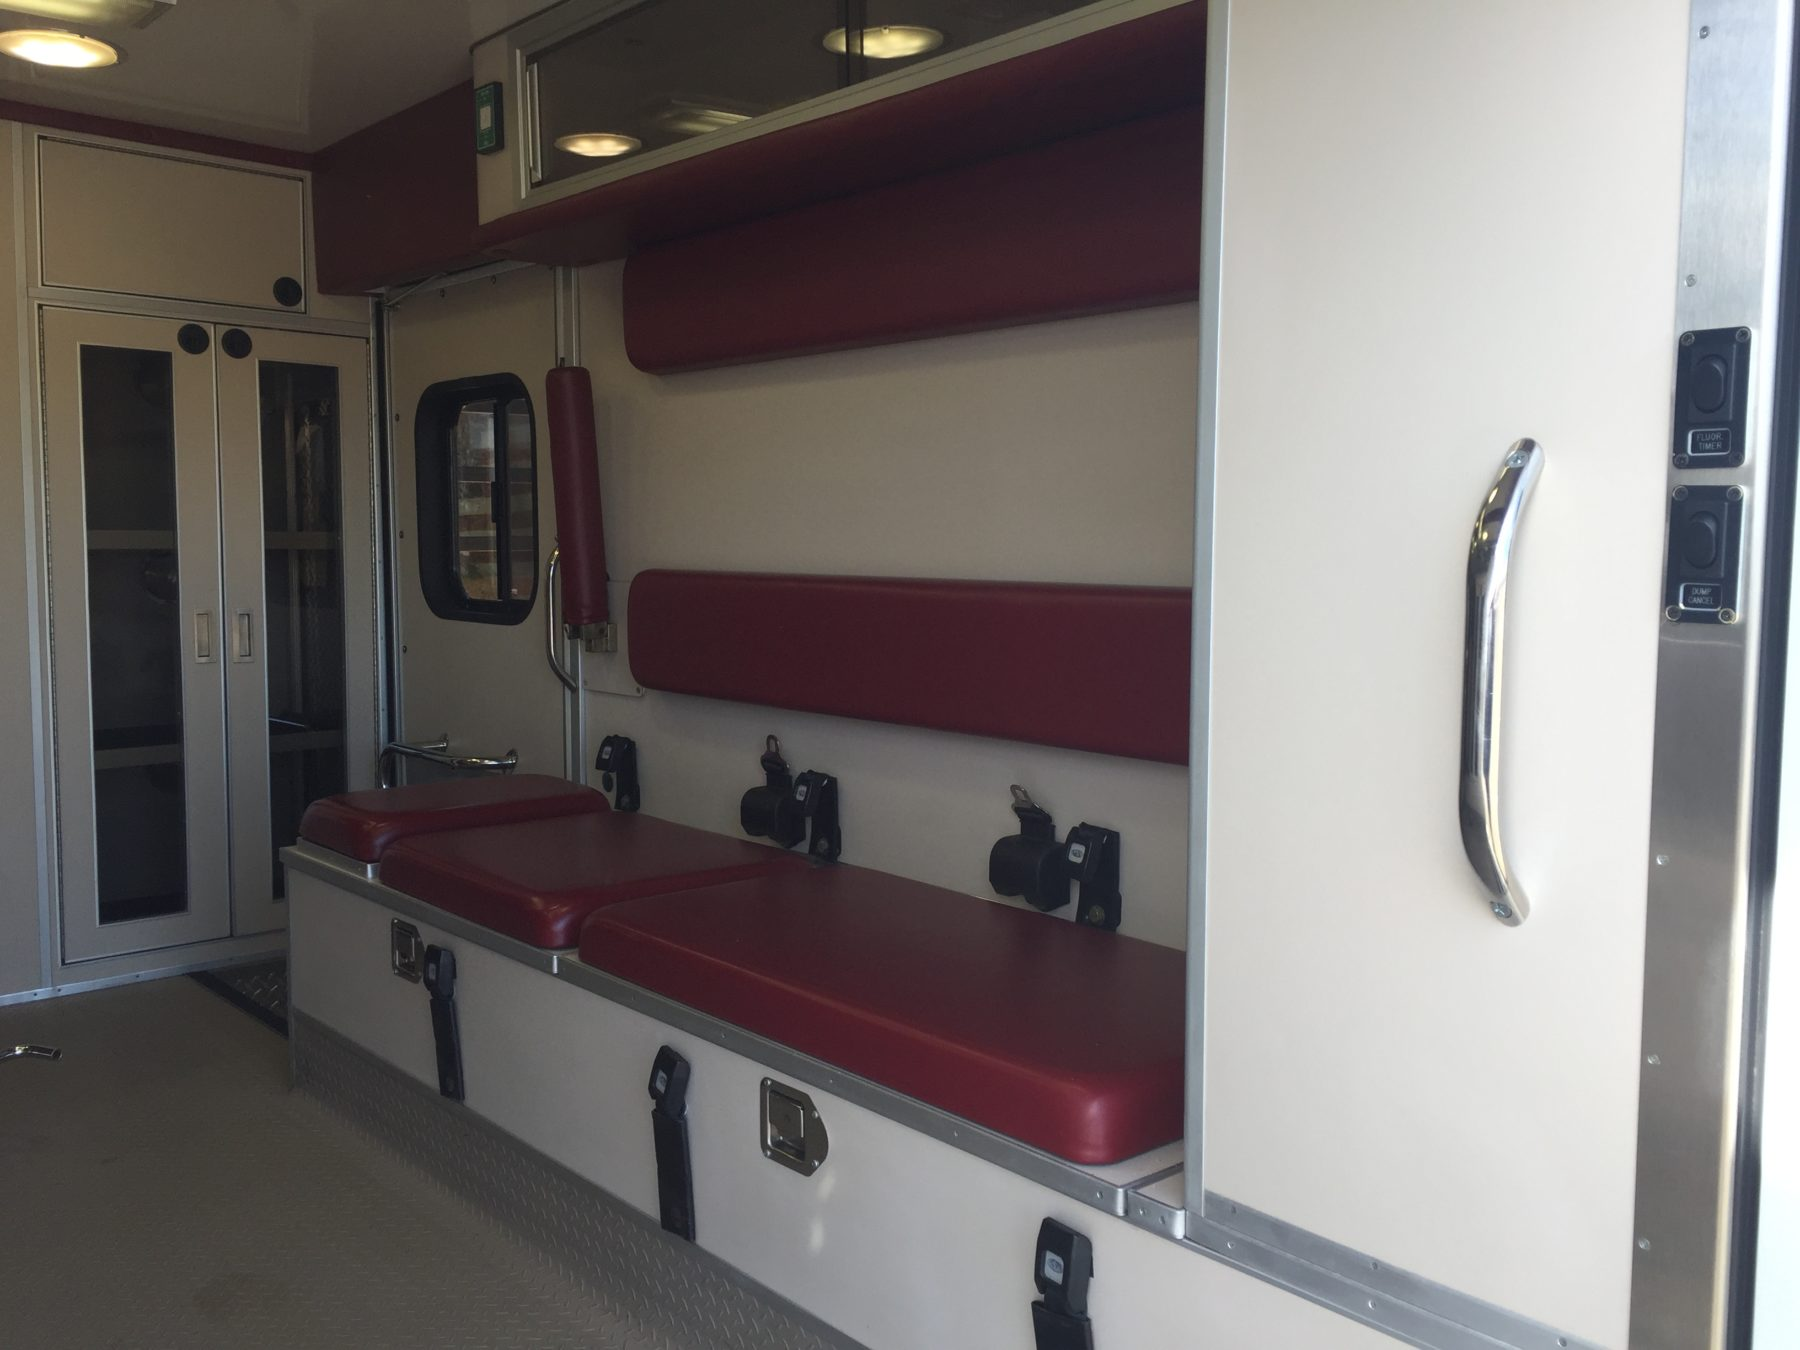 2006 Ford F450 4x4 Heavy Duty Ambulance For Sale – Picture 13